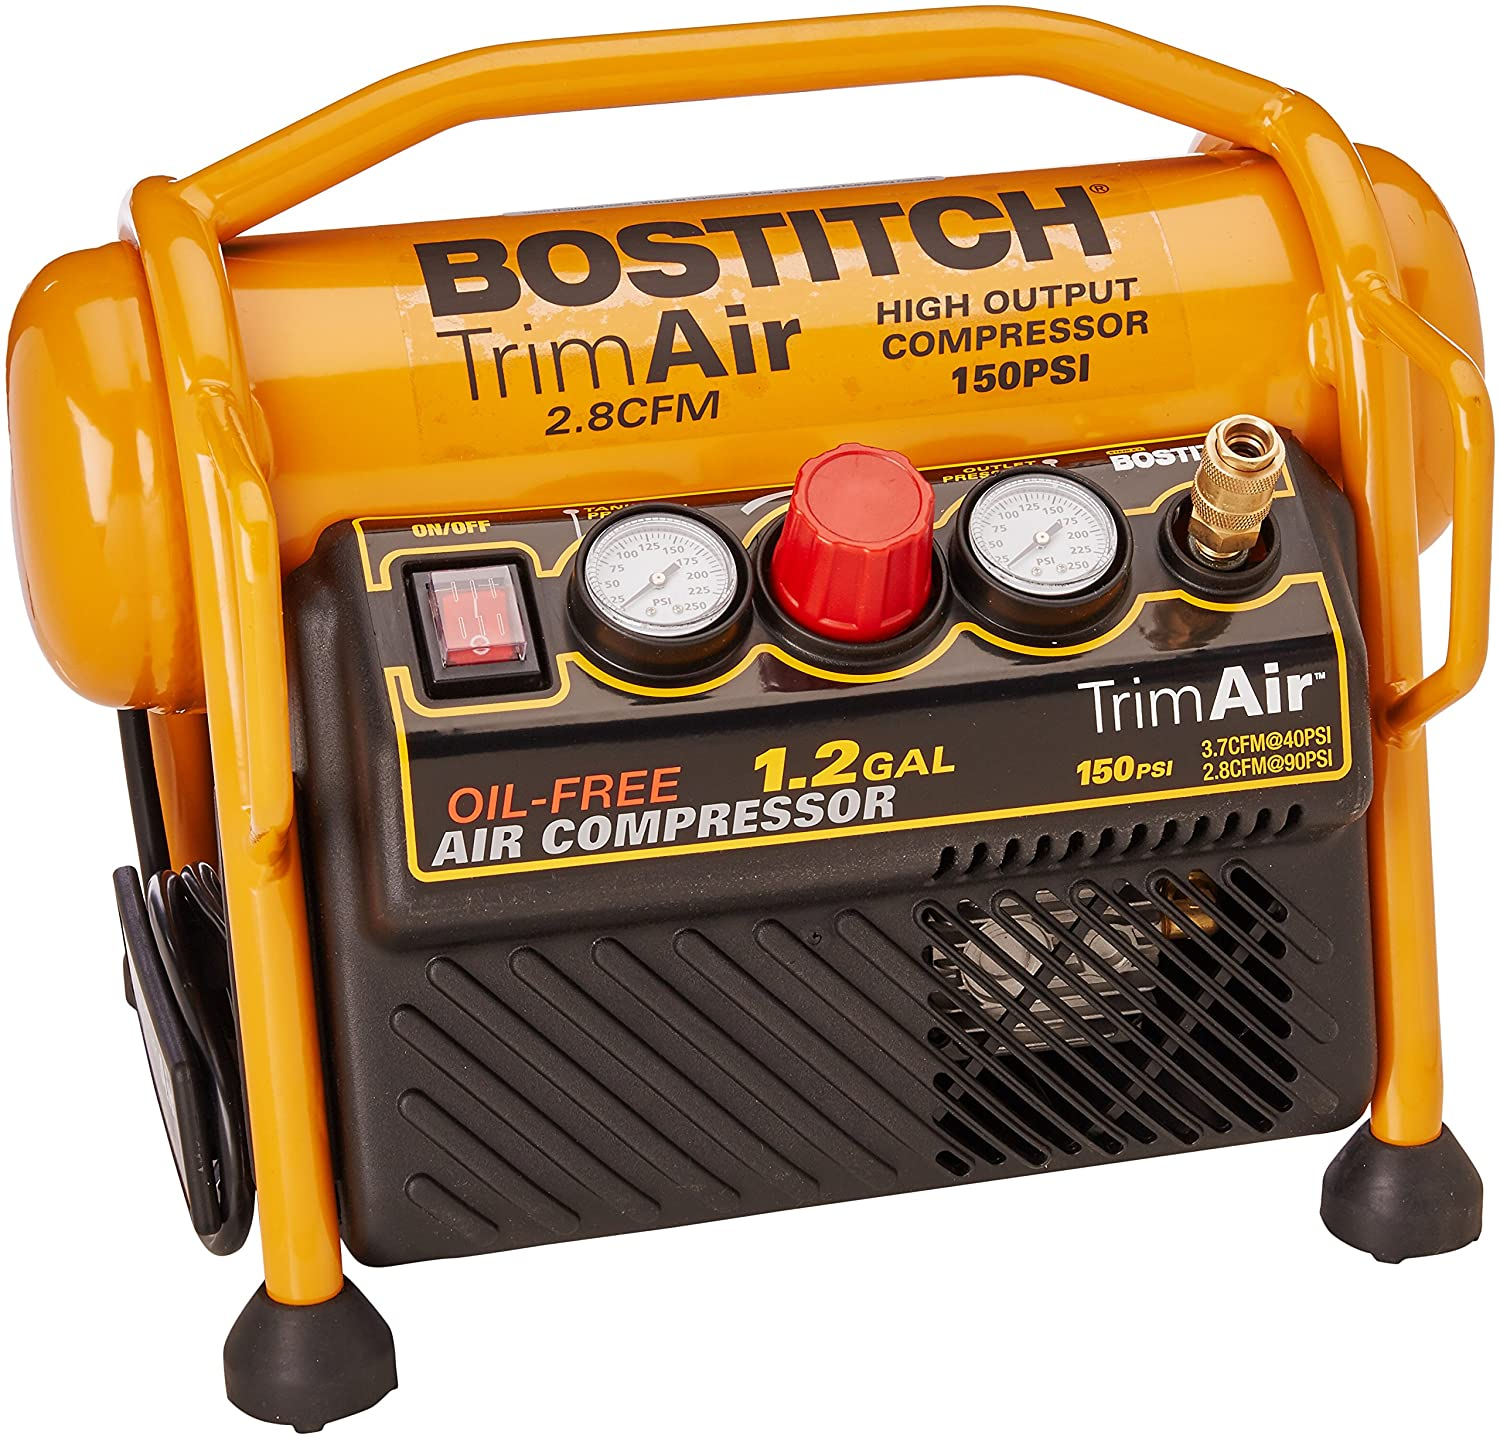 2.  Bostitch CAP1512-OF air compressor